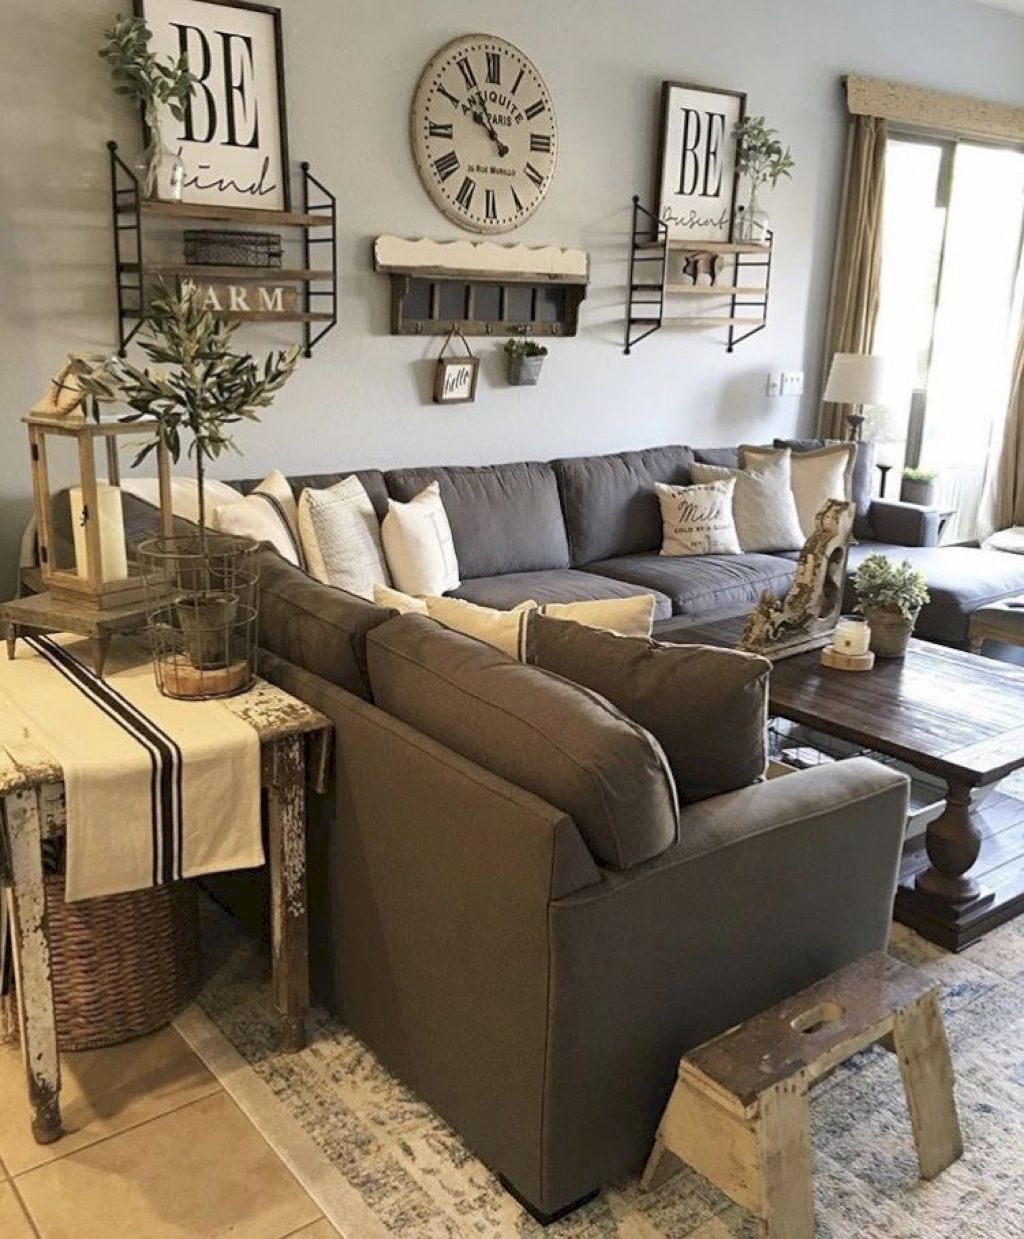 Adorable 35 Best Modern Farmhouse Living Room Decor Ideas https     Adorable 35 Best Modern Farmhouse Living Room Decor Ideas  https   homeylife com